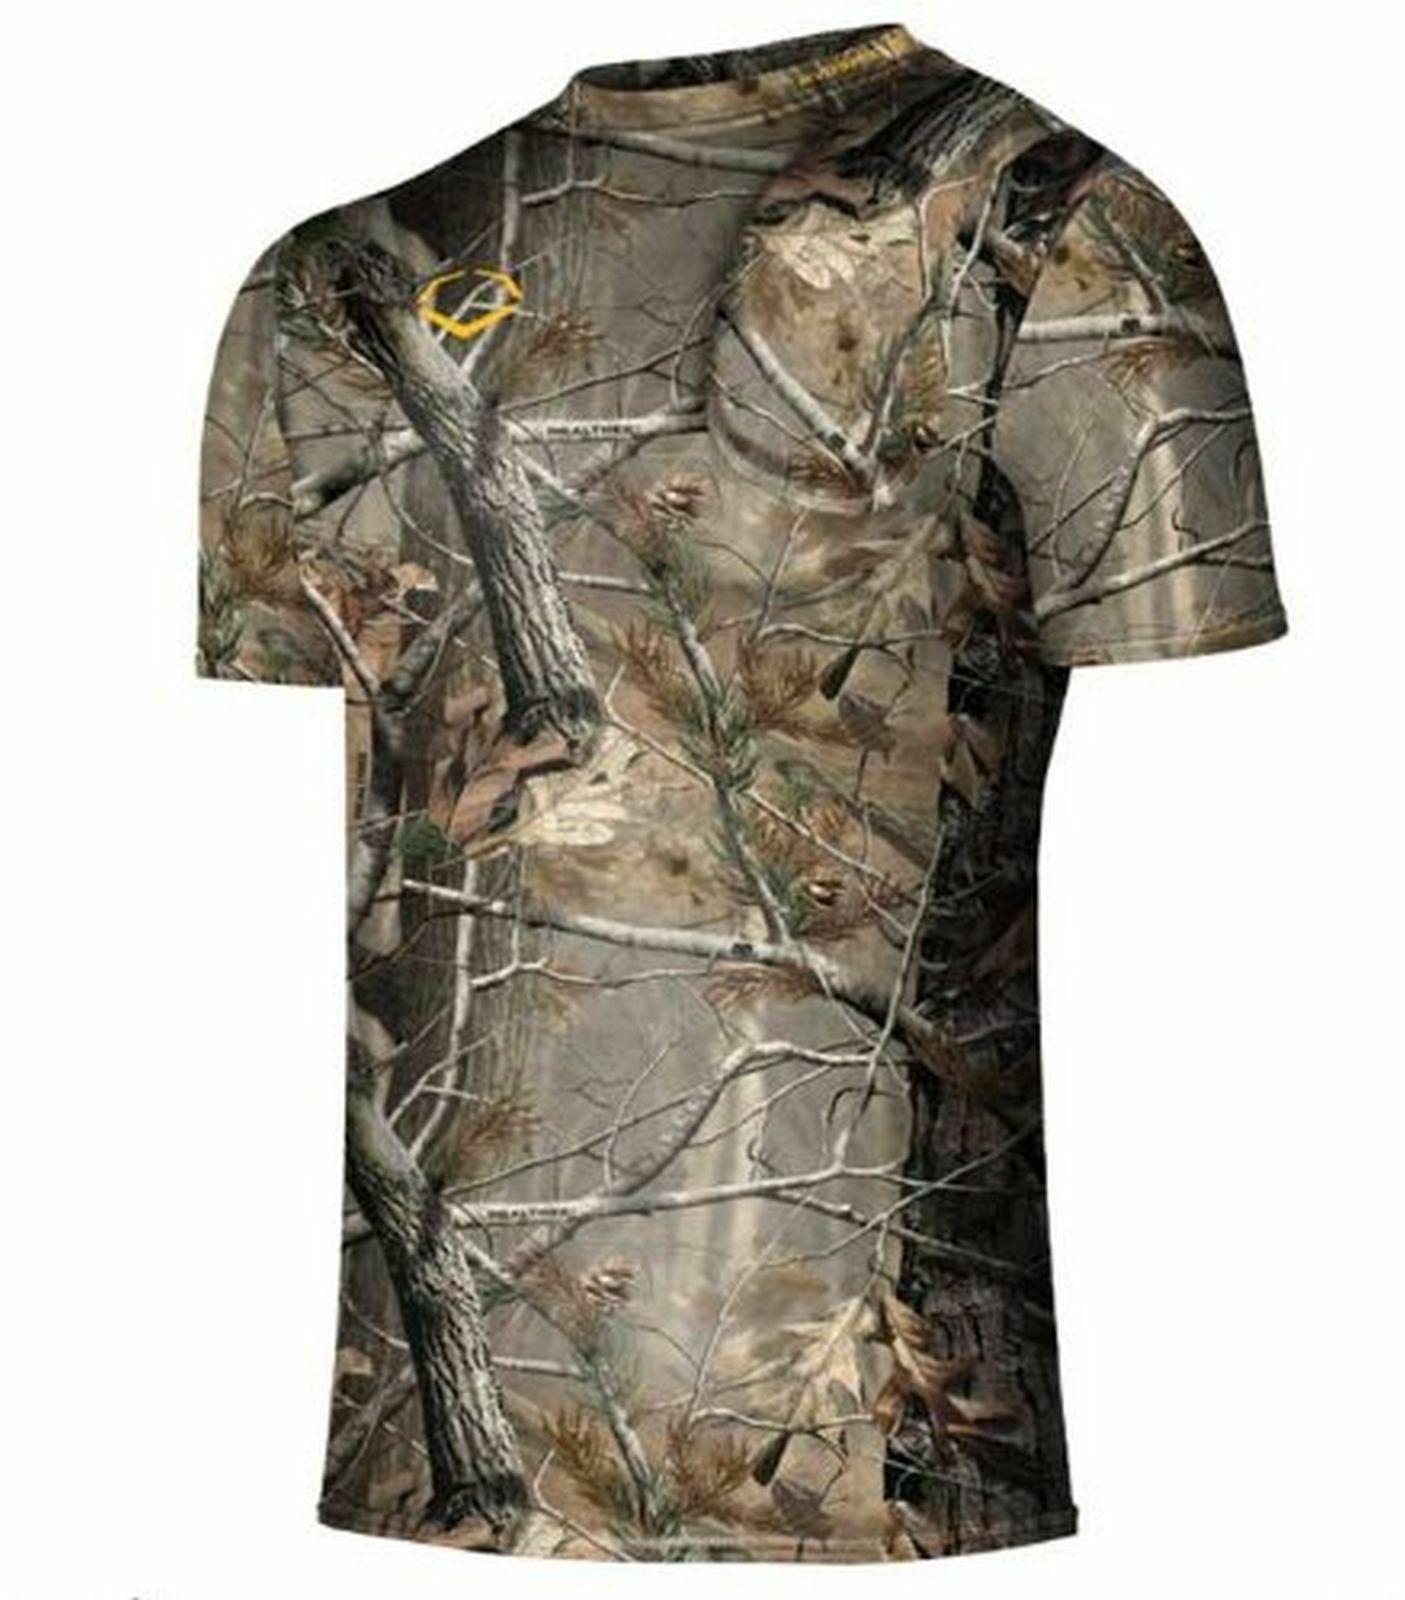 Evoshield A200 Hunting Recoil Shirt with Guard Right Small